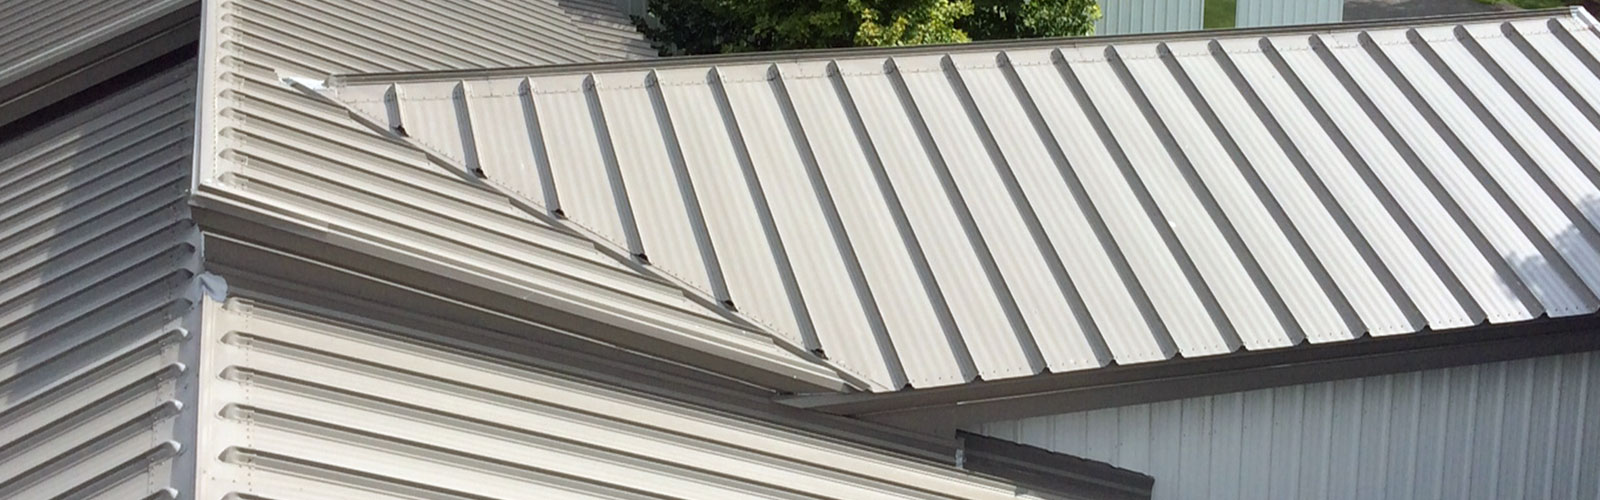 1 N Done Roofing Services Inc. Images